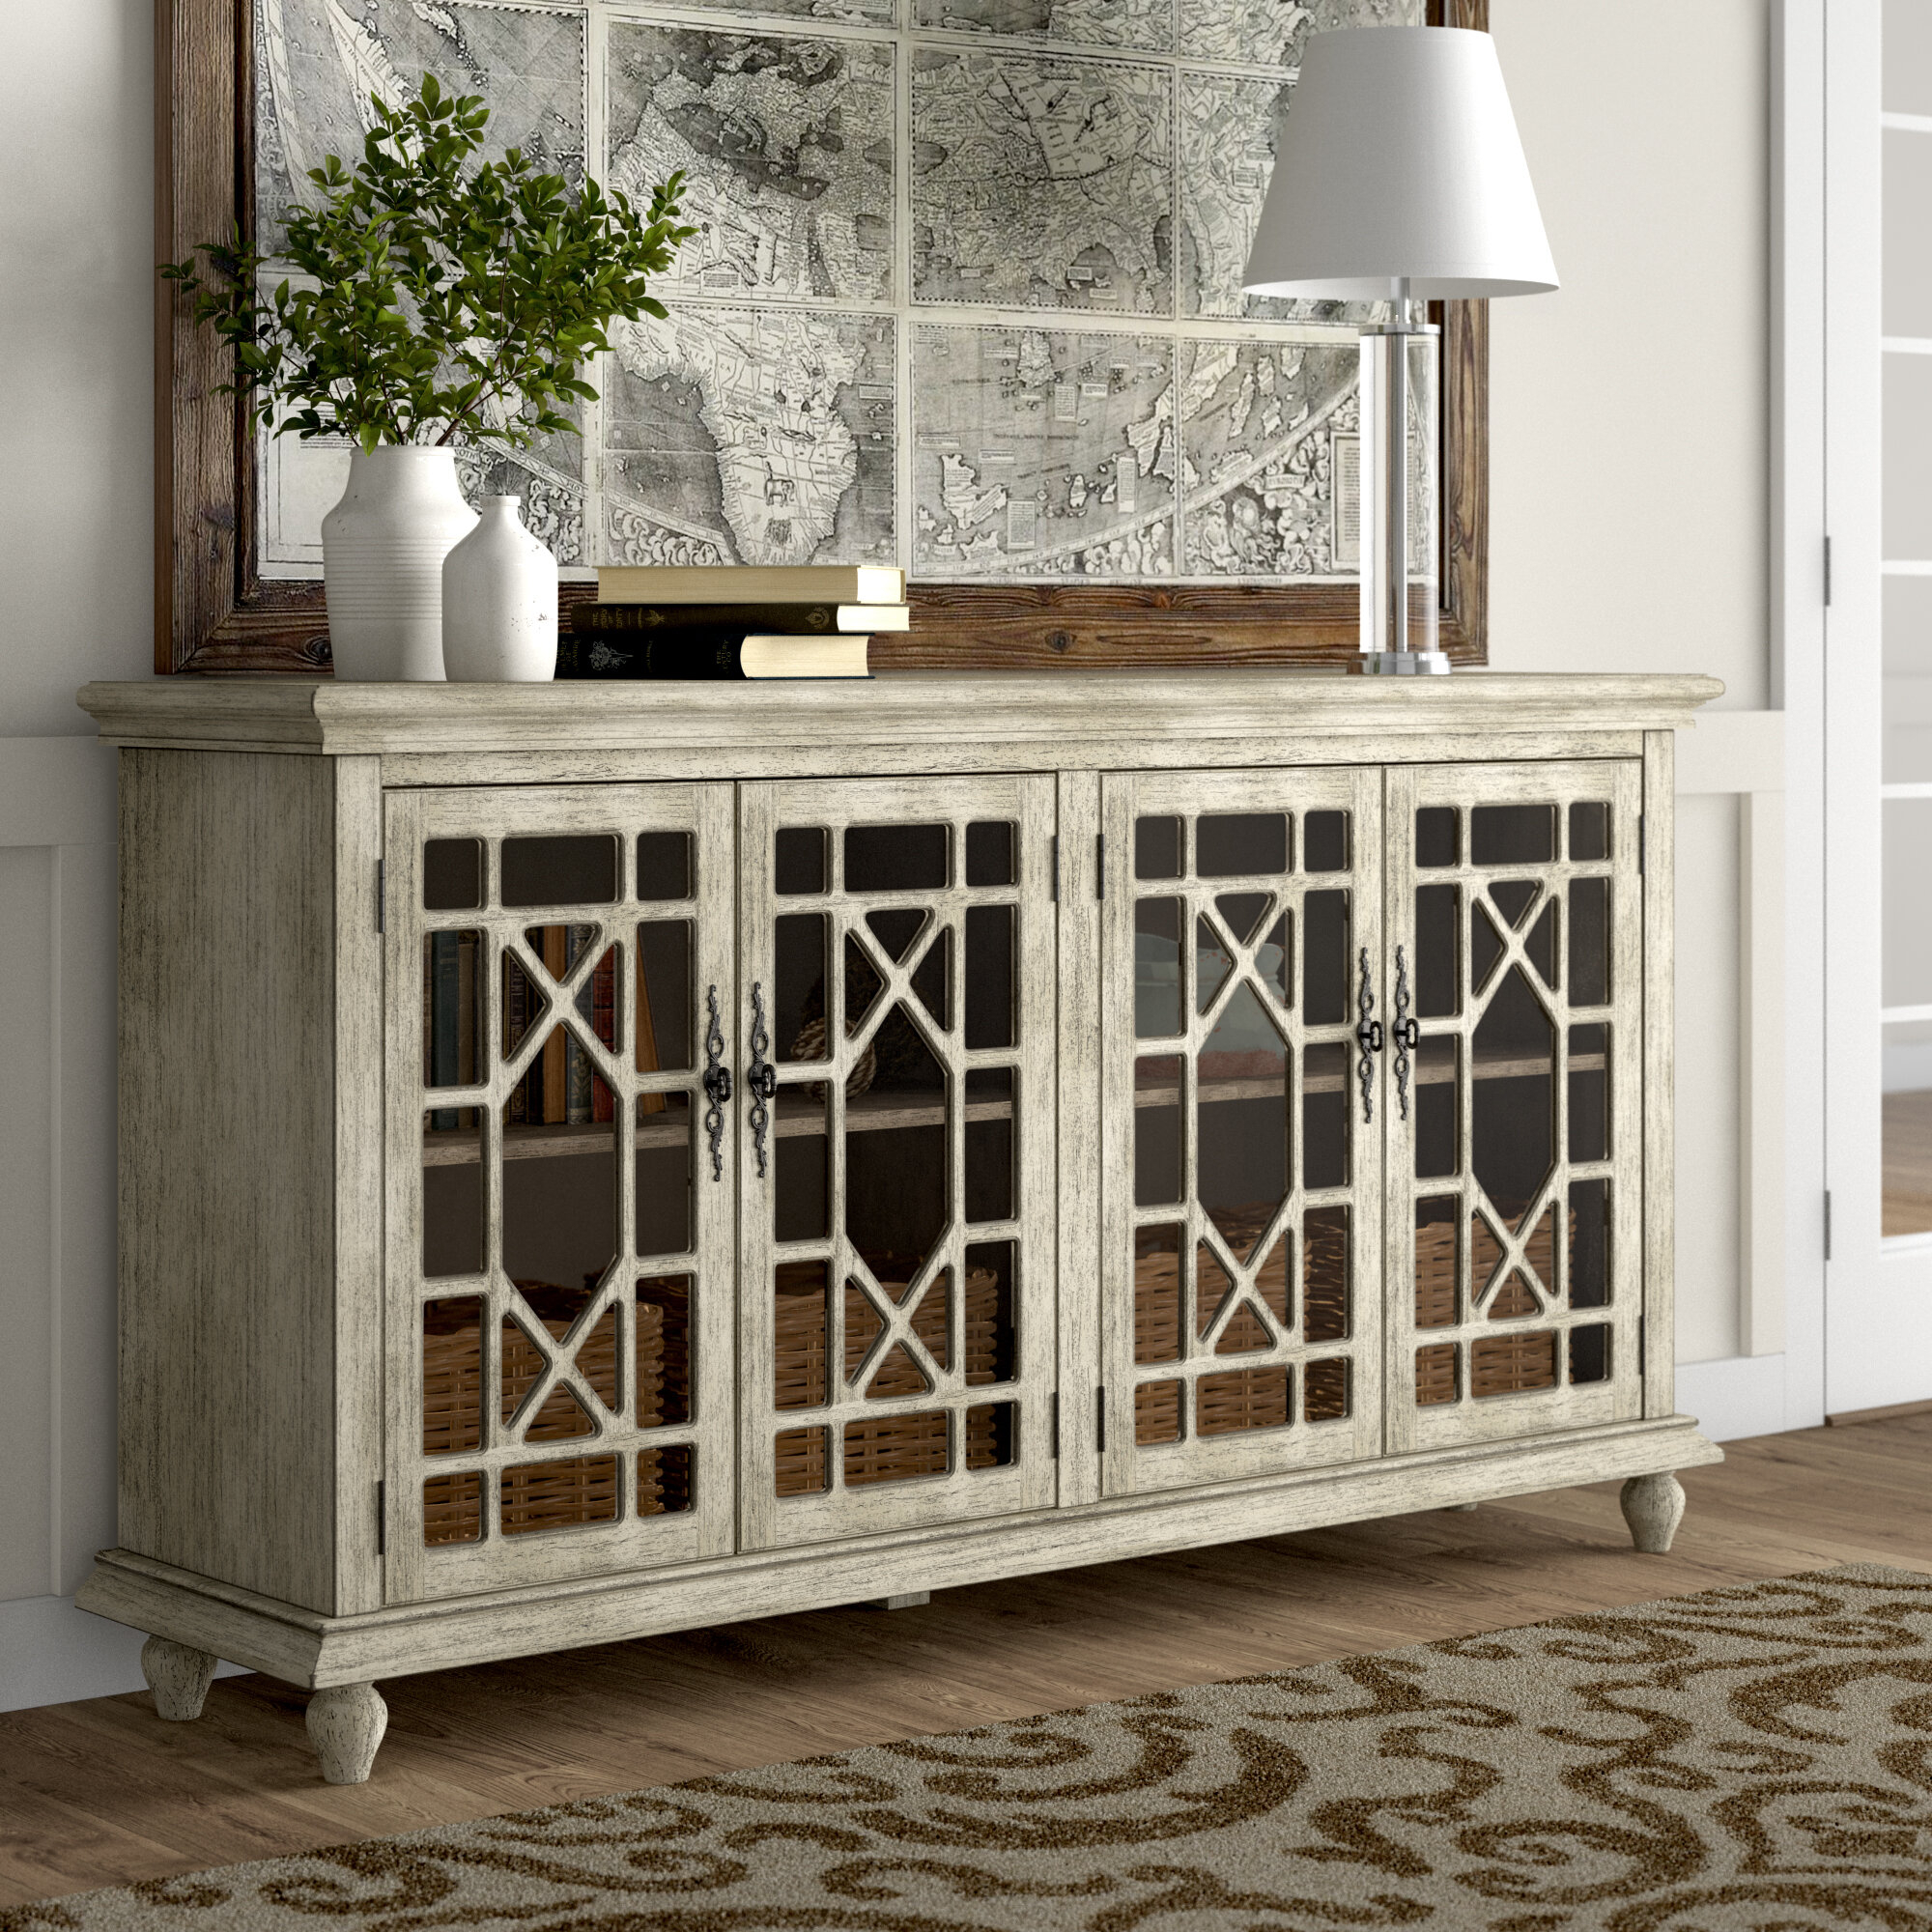 Eclectic Sideboards & Buffets | Birch Lane With Regard To Steinhatchee Reclaimed Pine 4 Door Sideboards (View 14 of 30)